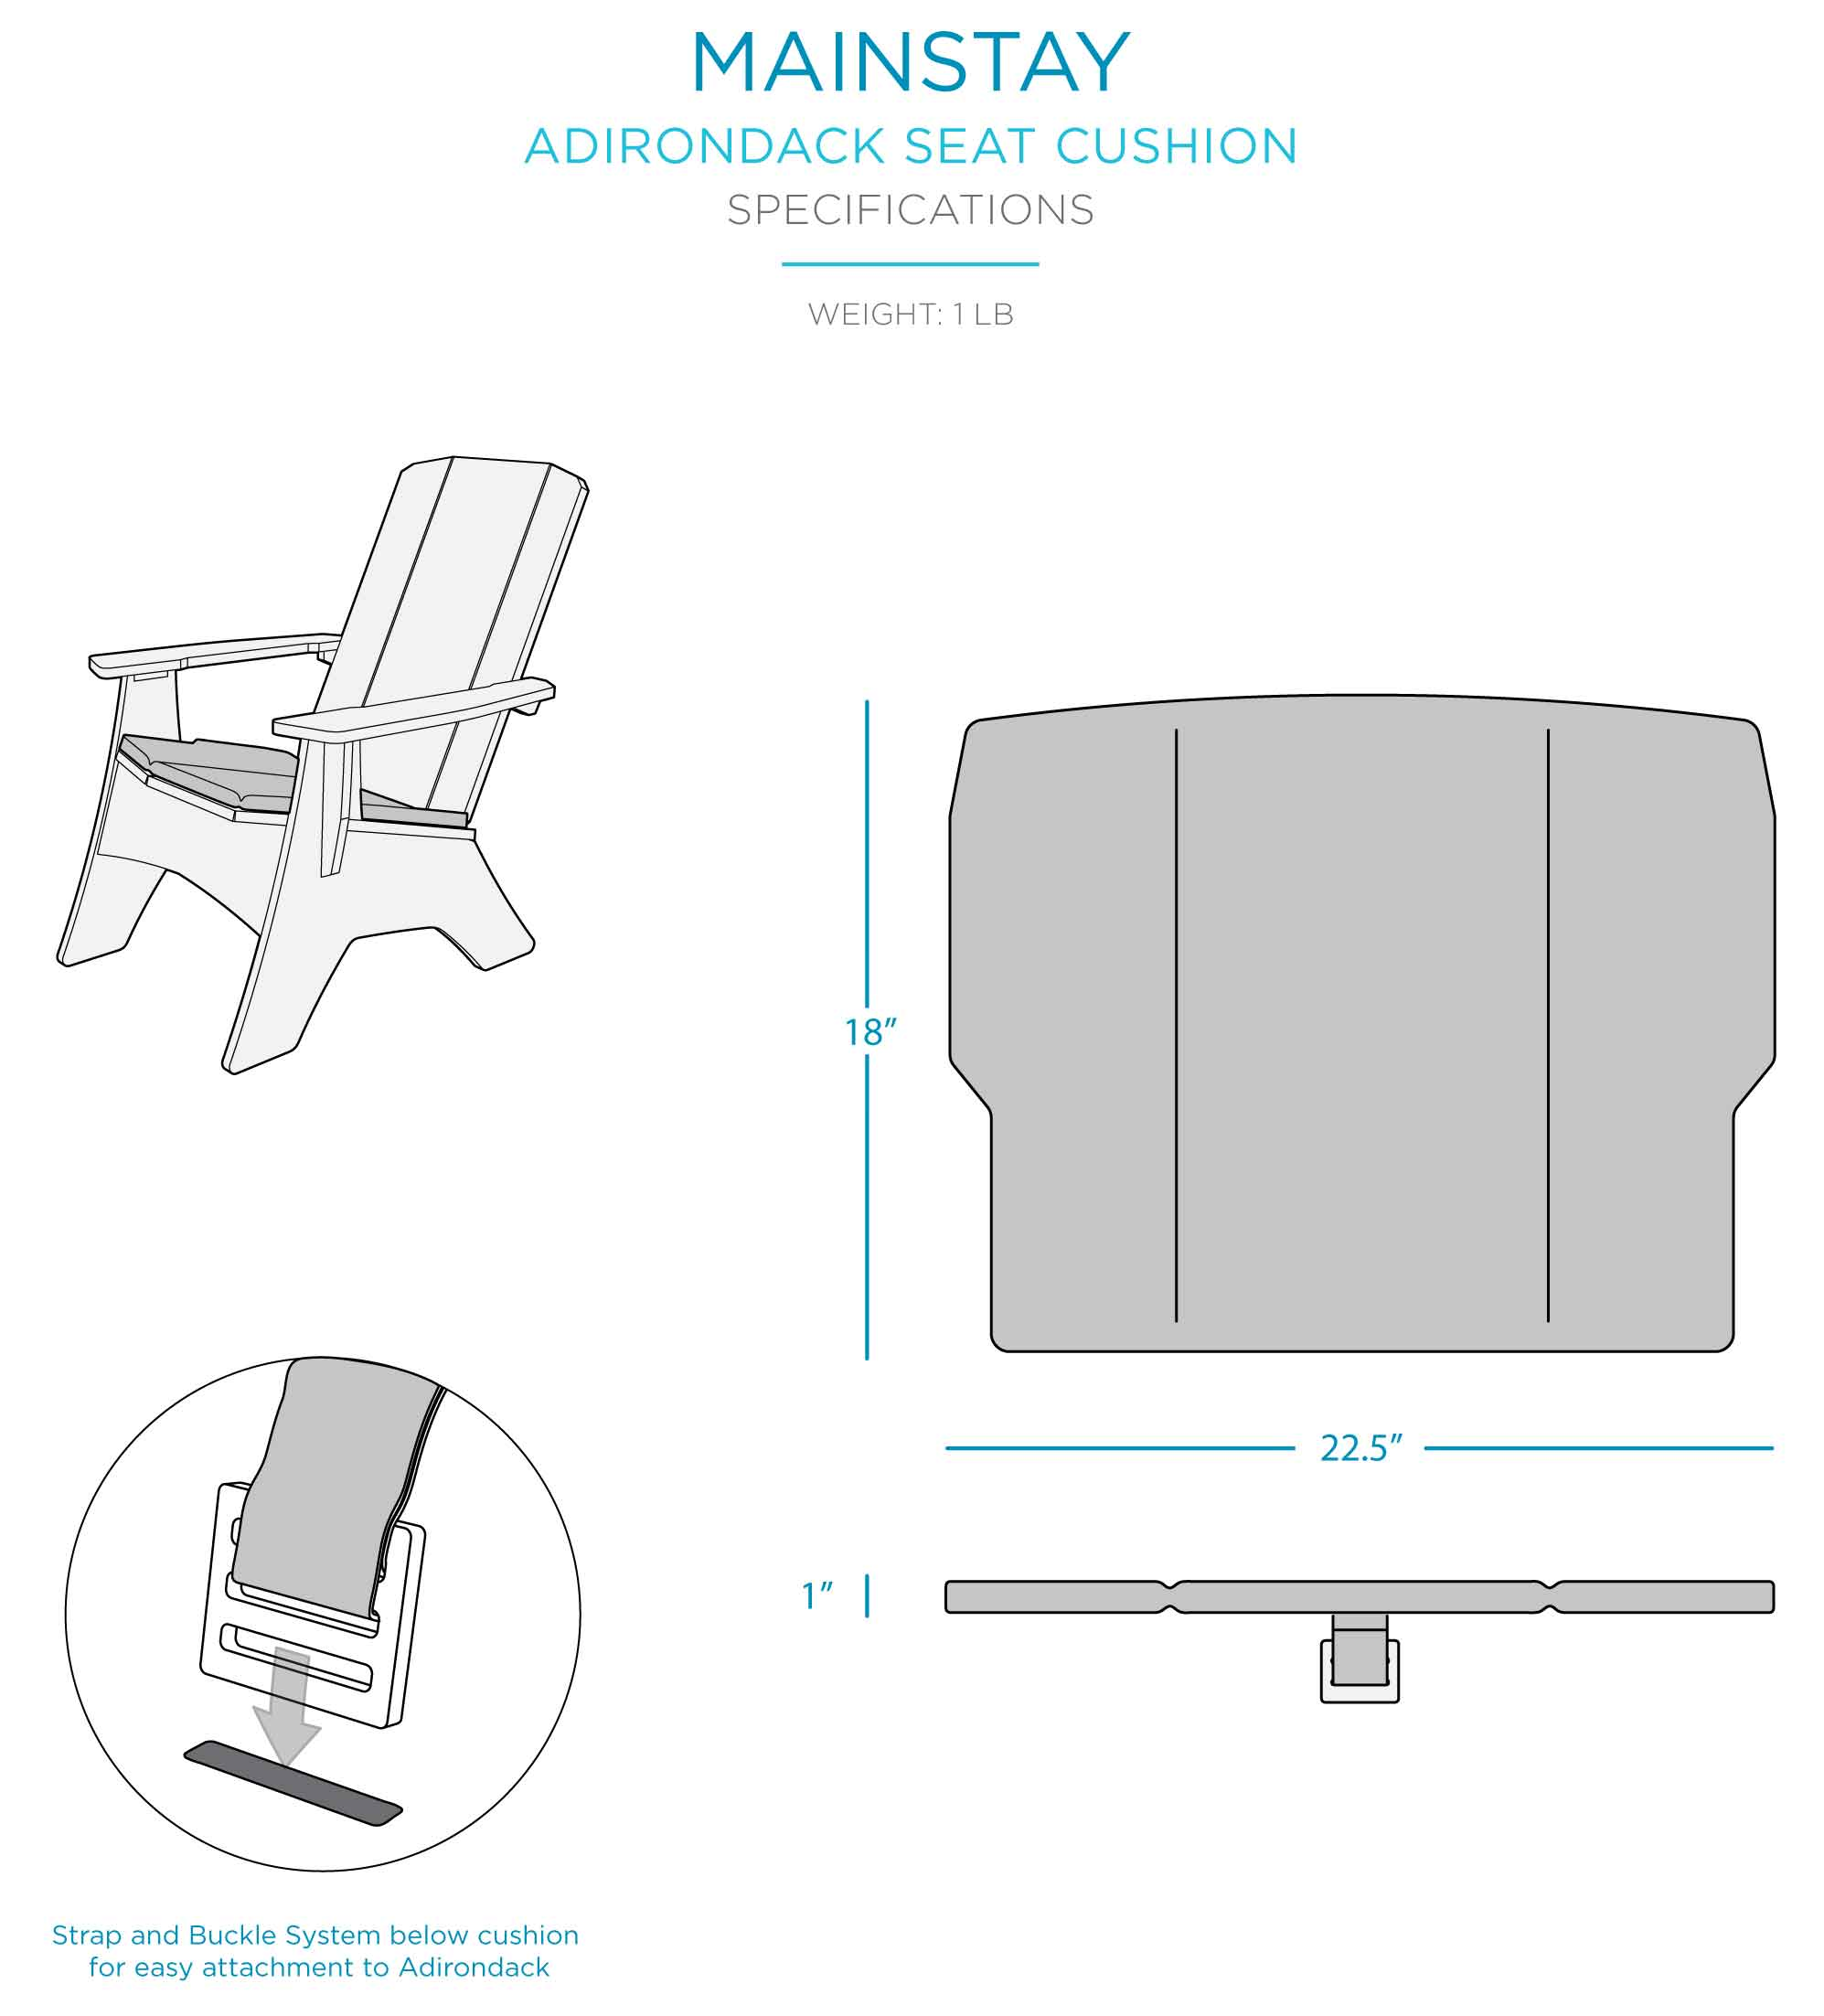 mainstay-adirondack-seat-cushion-specifications